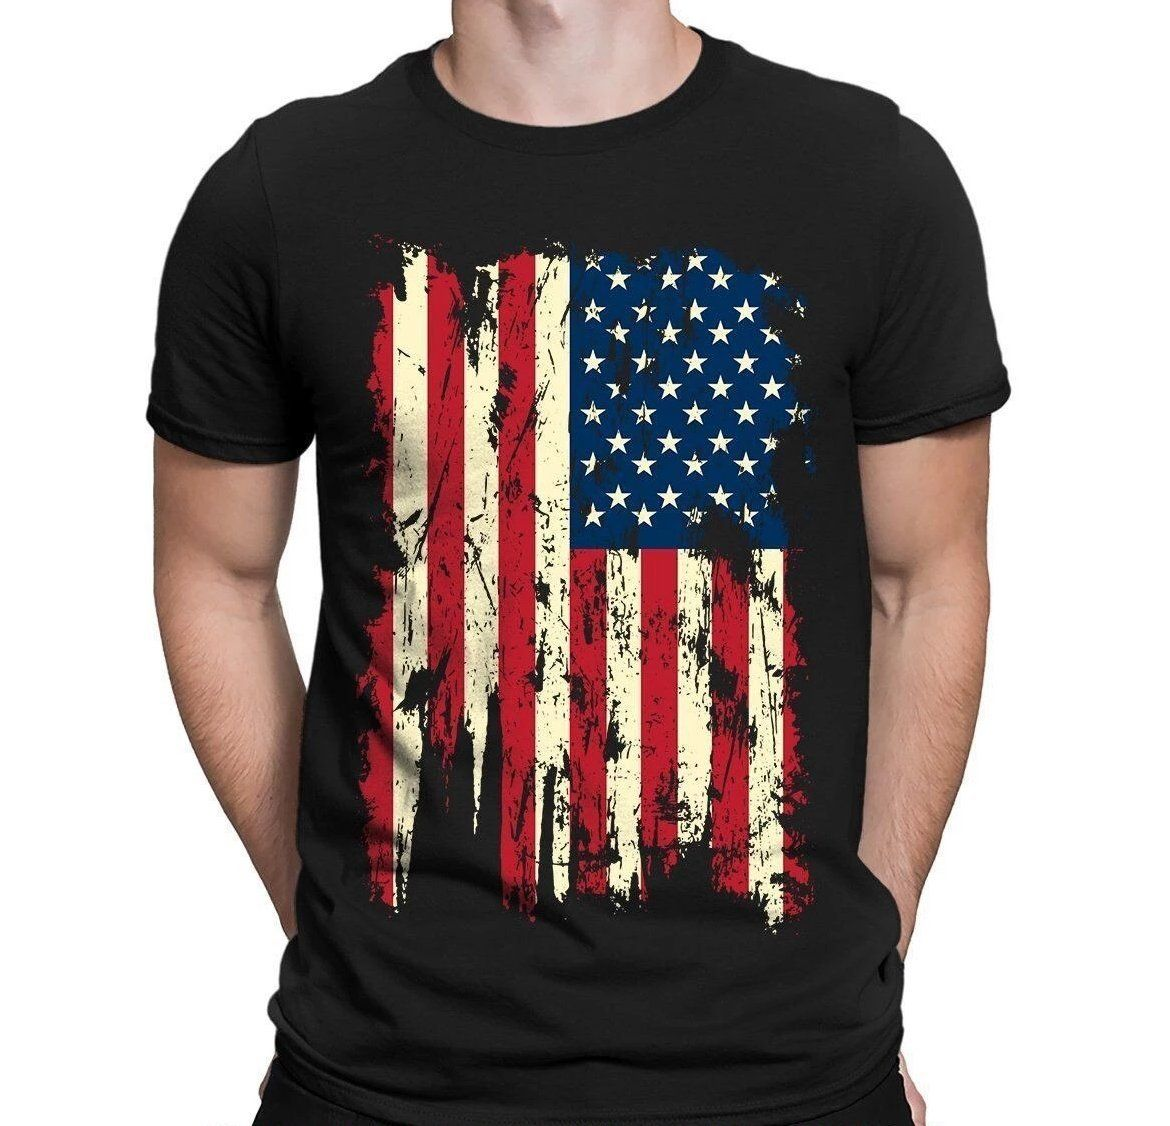 Men S Short Sleeve T Shirt With American Flag Print Colors Black White Gray Blue Navy Red Purple Green D Mens Tshirts Mens Shirts Casual Wear For Men